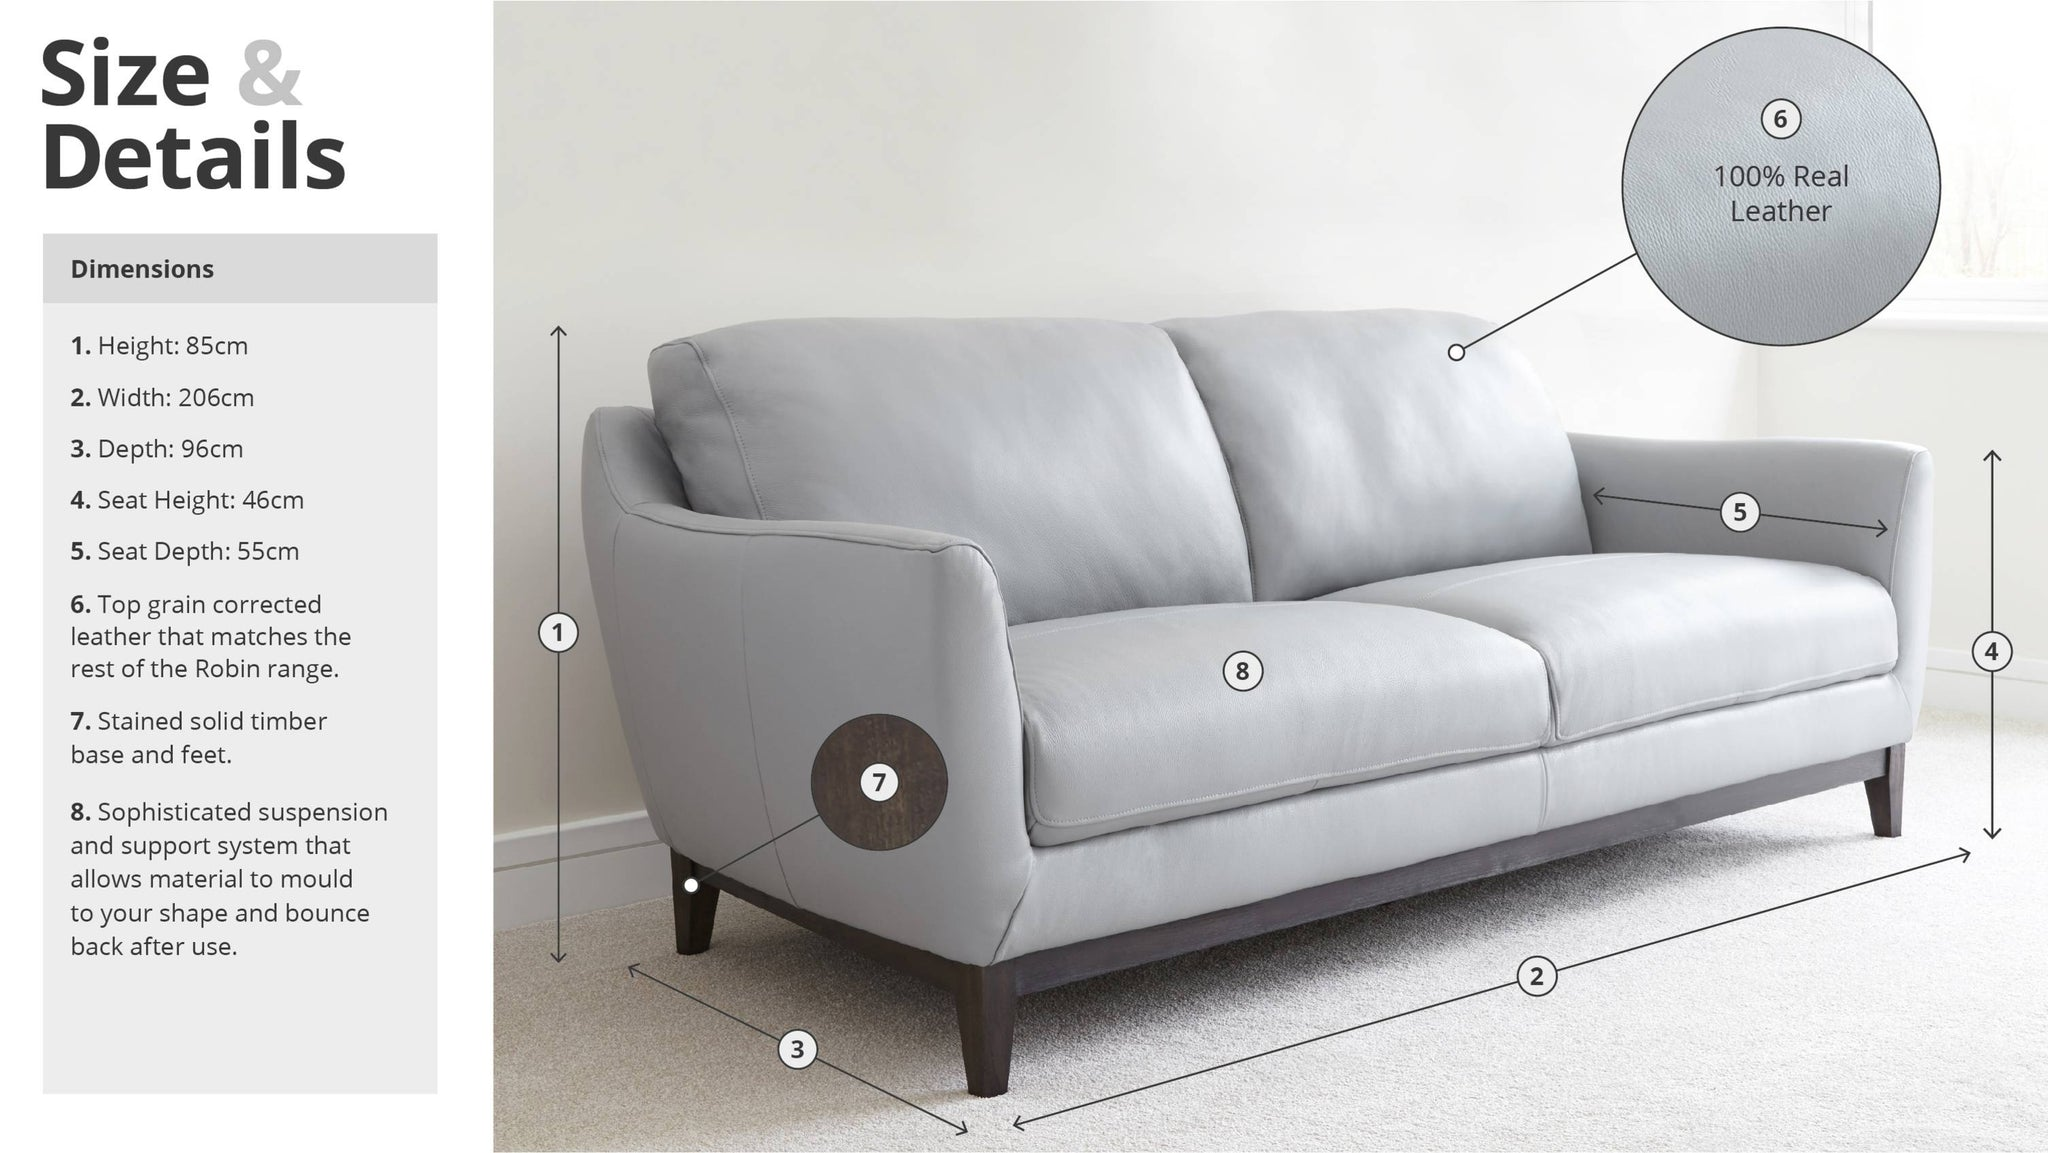 Three Seater Modern Grey Sofa Size and Details